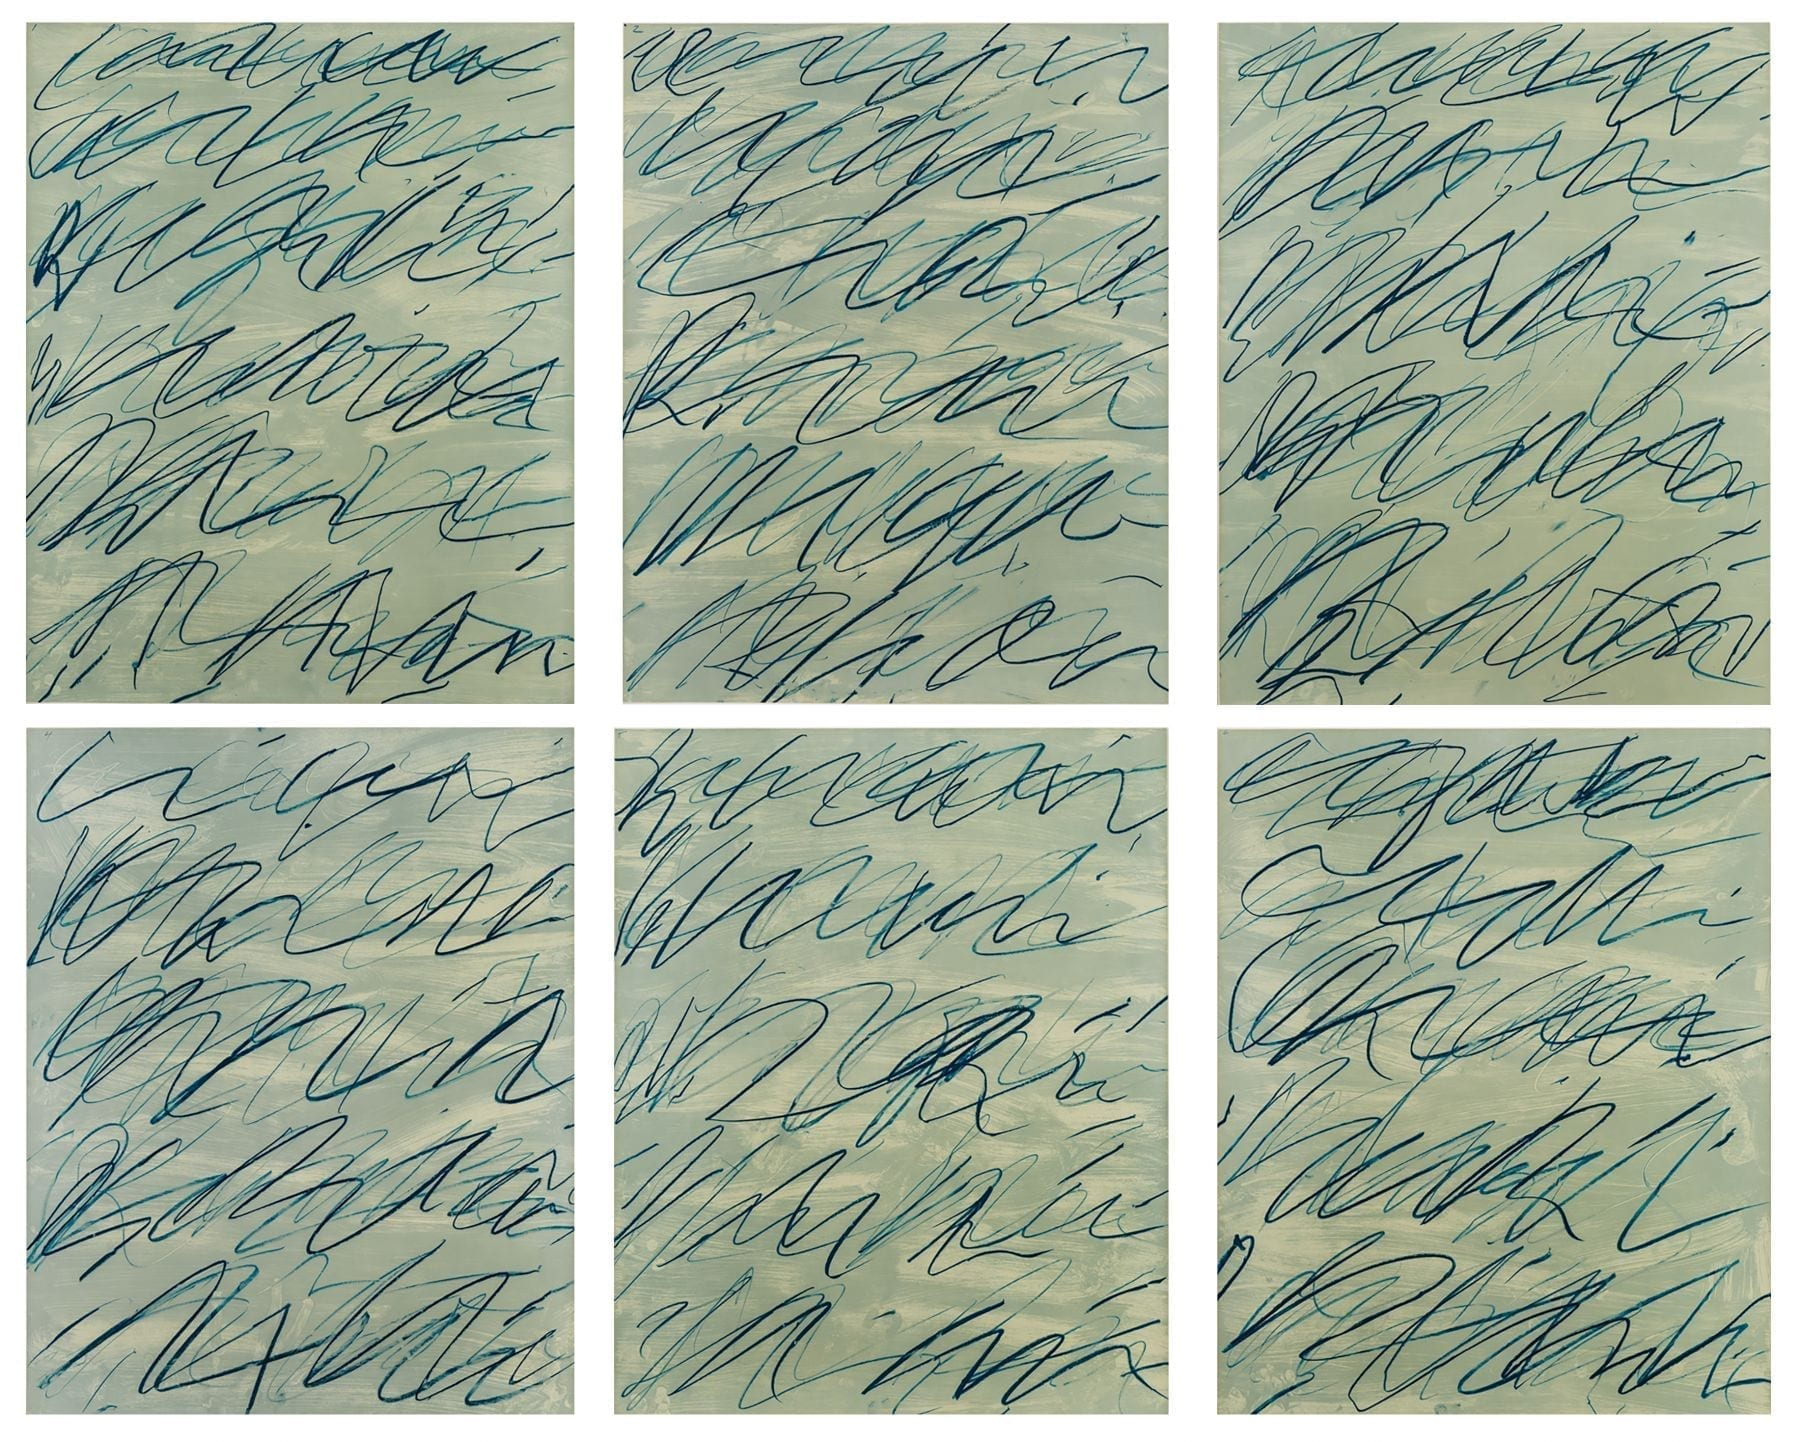 Cy Twombly, Roman Notes, 1970, Offset lithographs